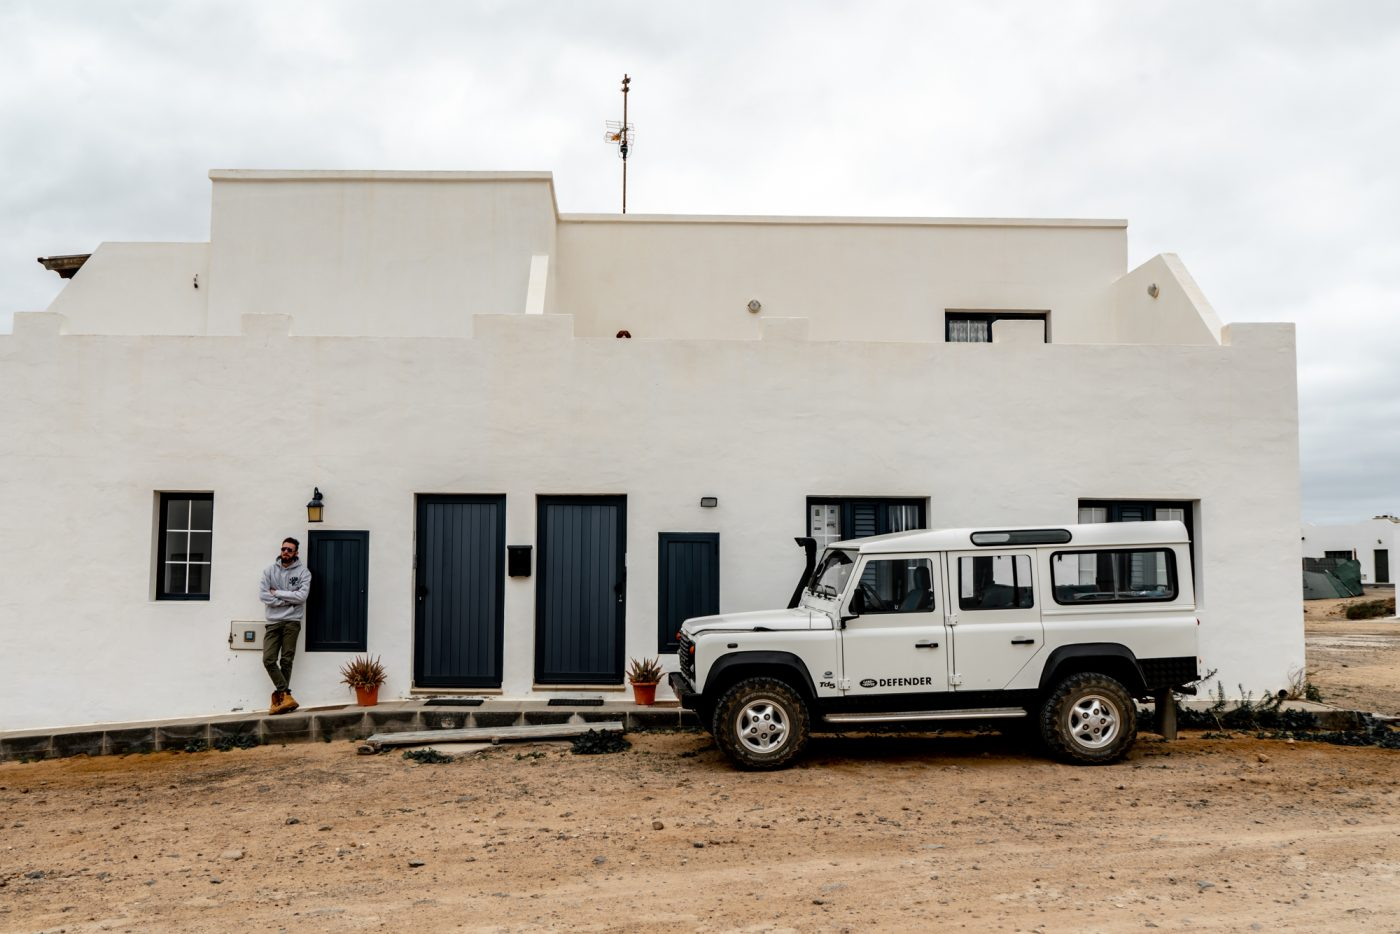 Take the ferry to visit La Graciosa, Caleta del Sebo